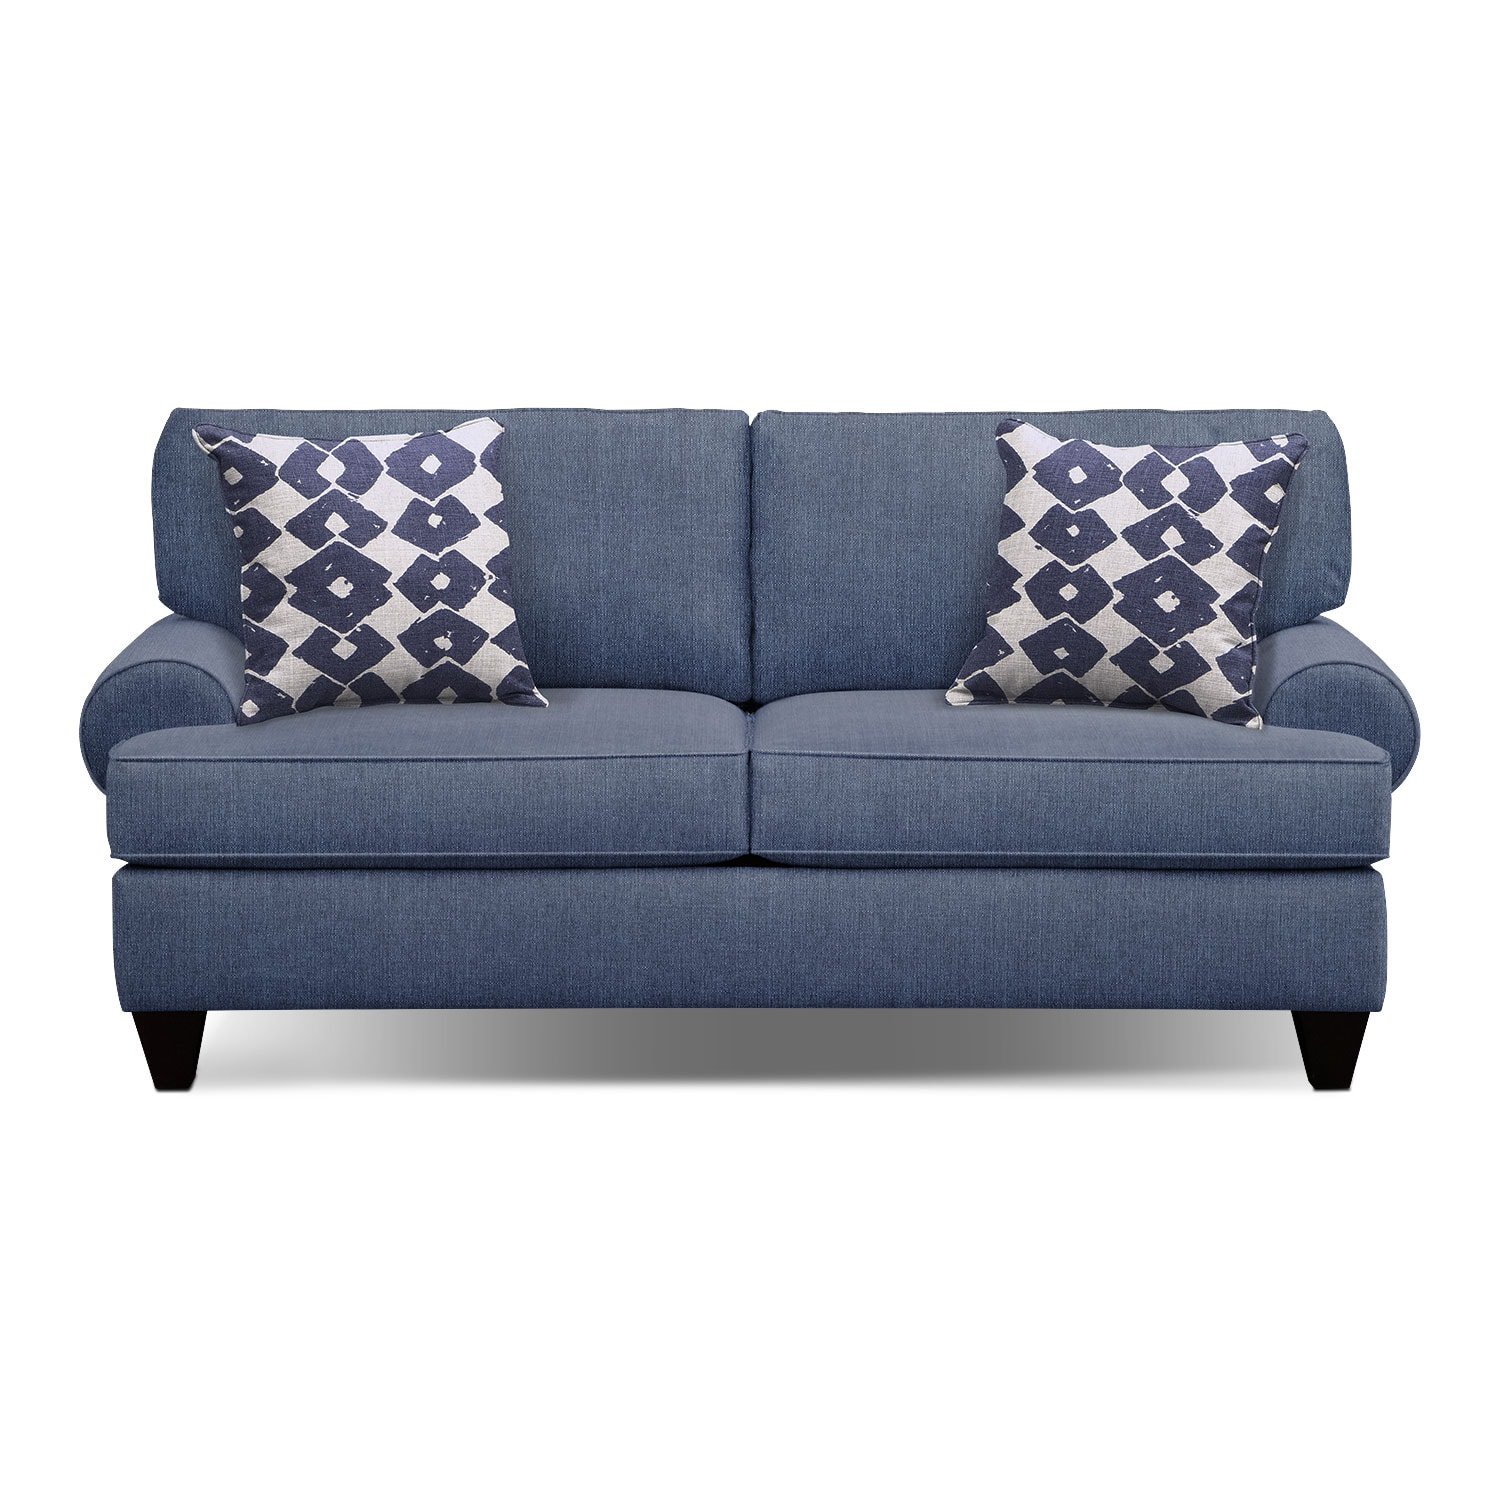 "Living Room Furniture - Bailey Blue 79"" Innerspring Sleeper Sofa"